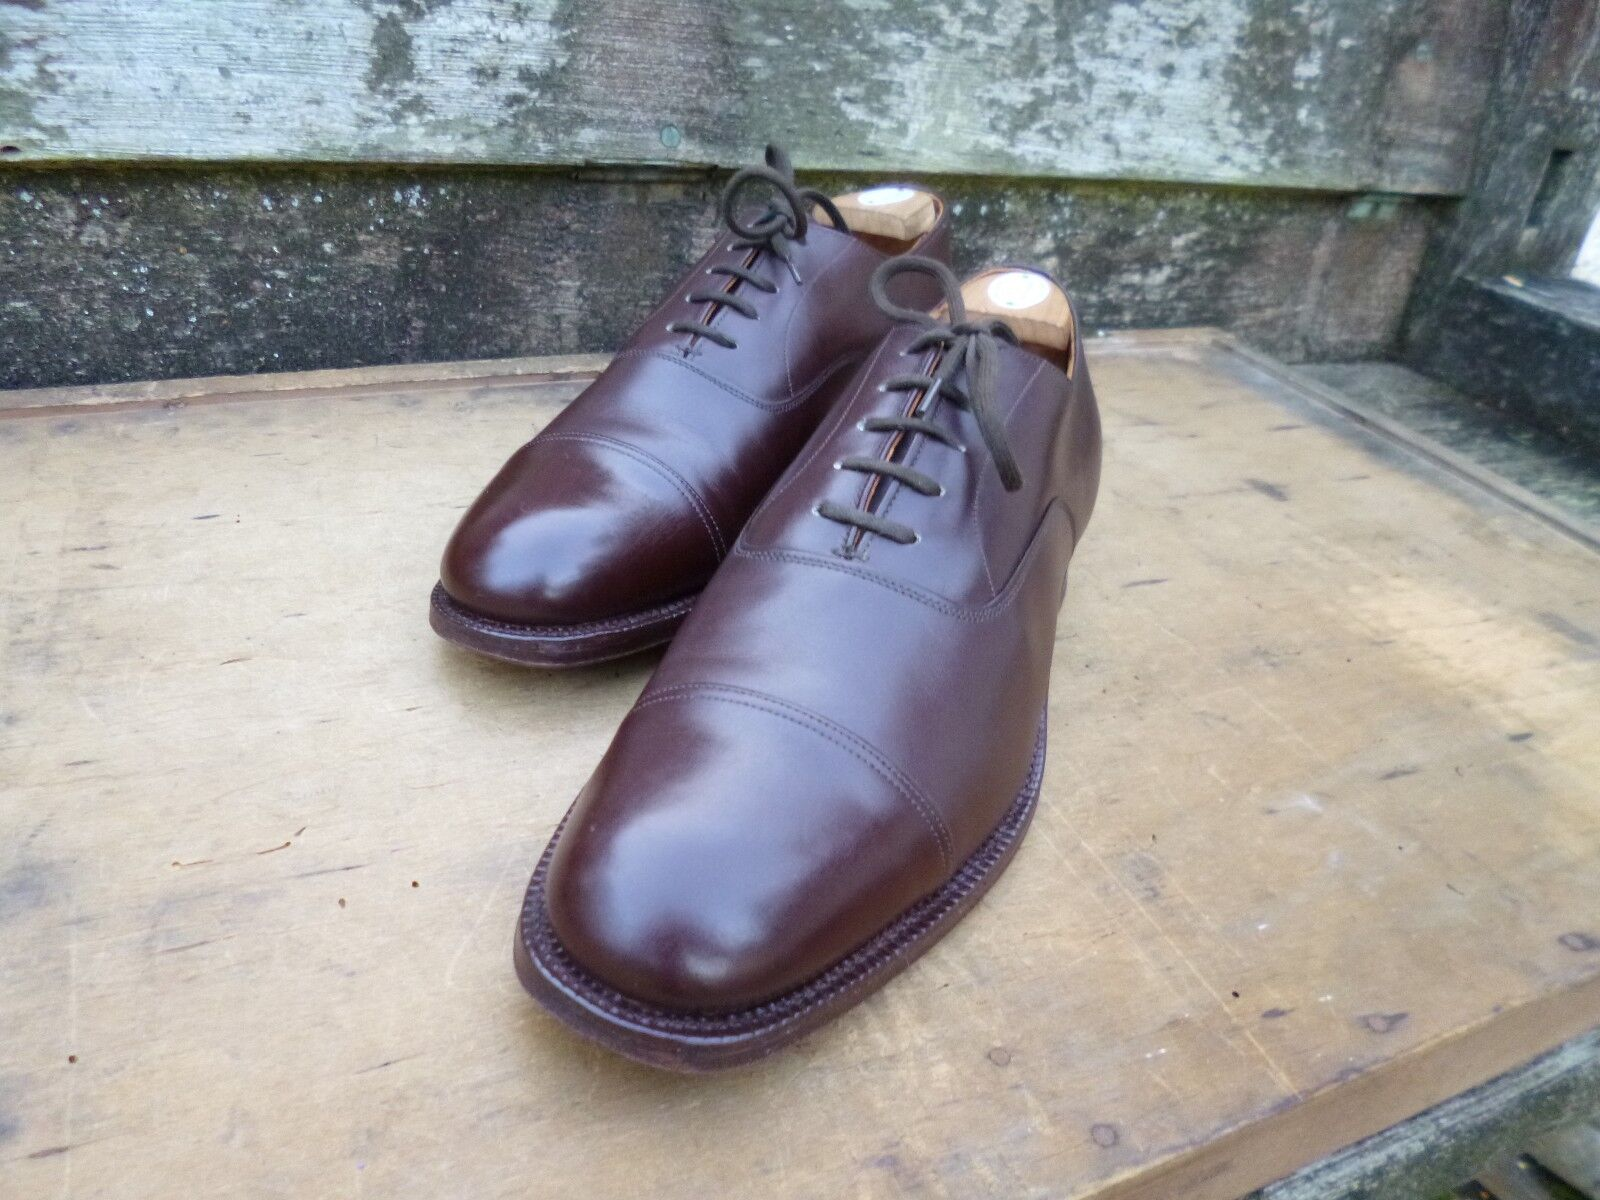 CHURCH VINTBGE OXFORD - BROWN - UK 9.5 (NBRROW) – MESSENGER – SUPERB CONDITION